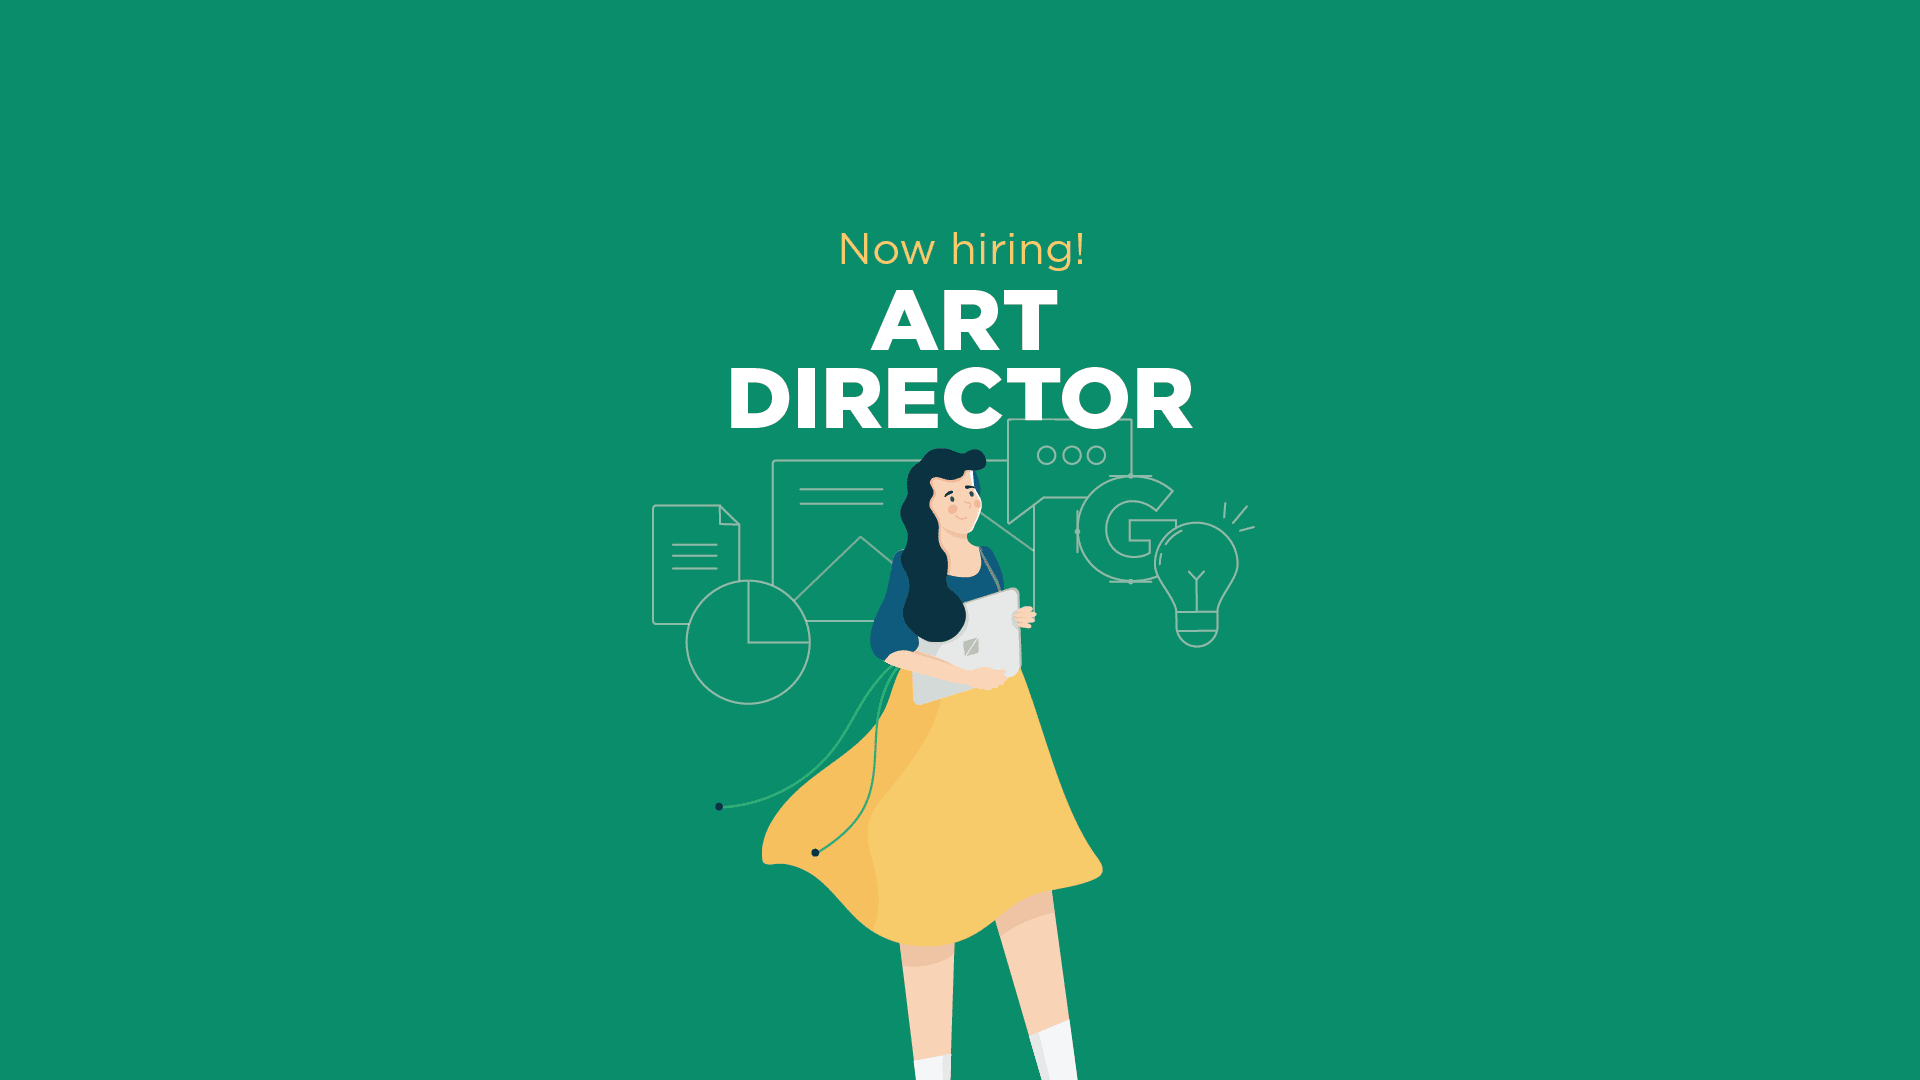 Art Director & Design Lead Wanted